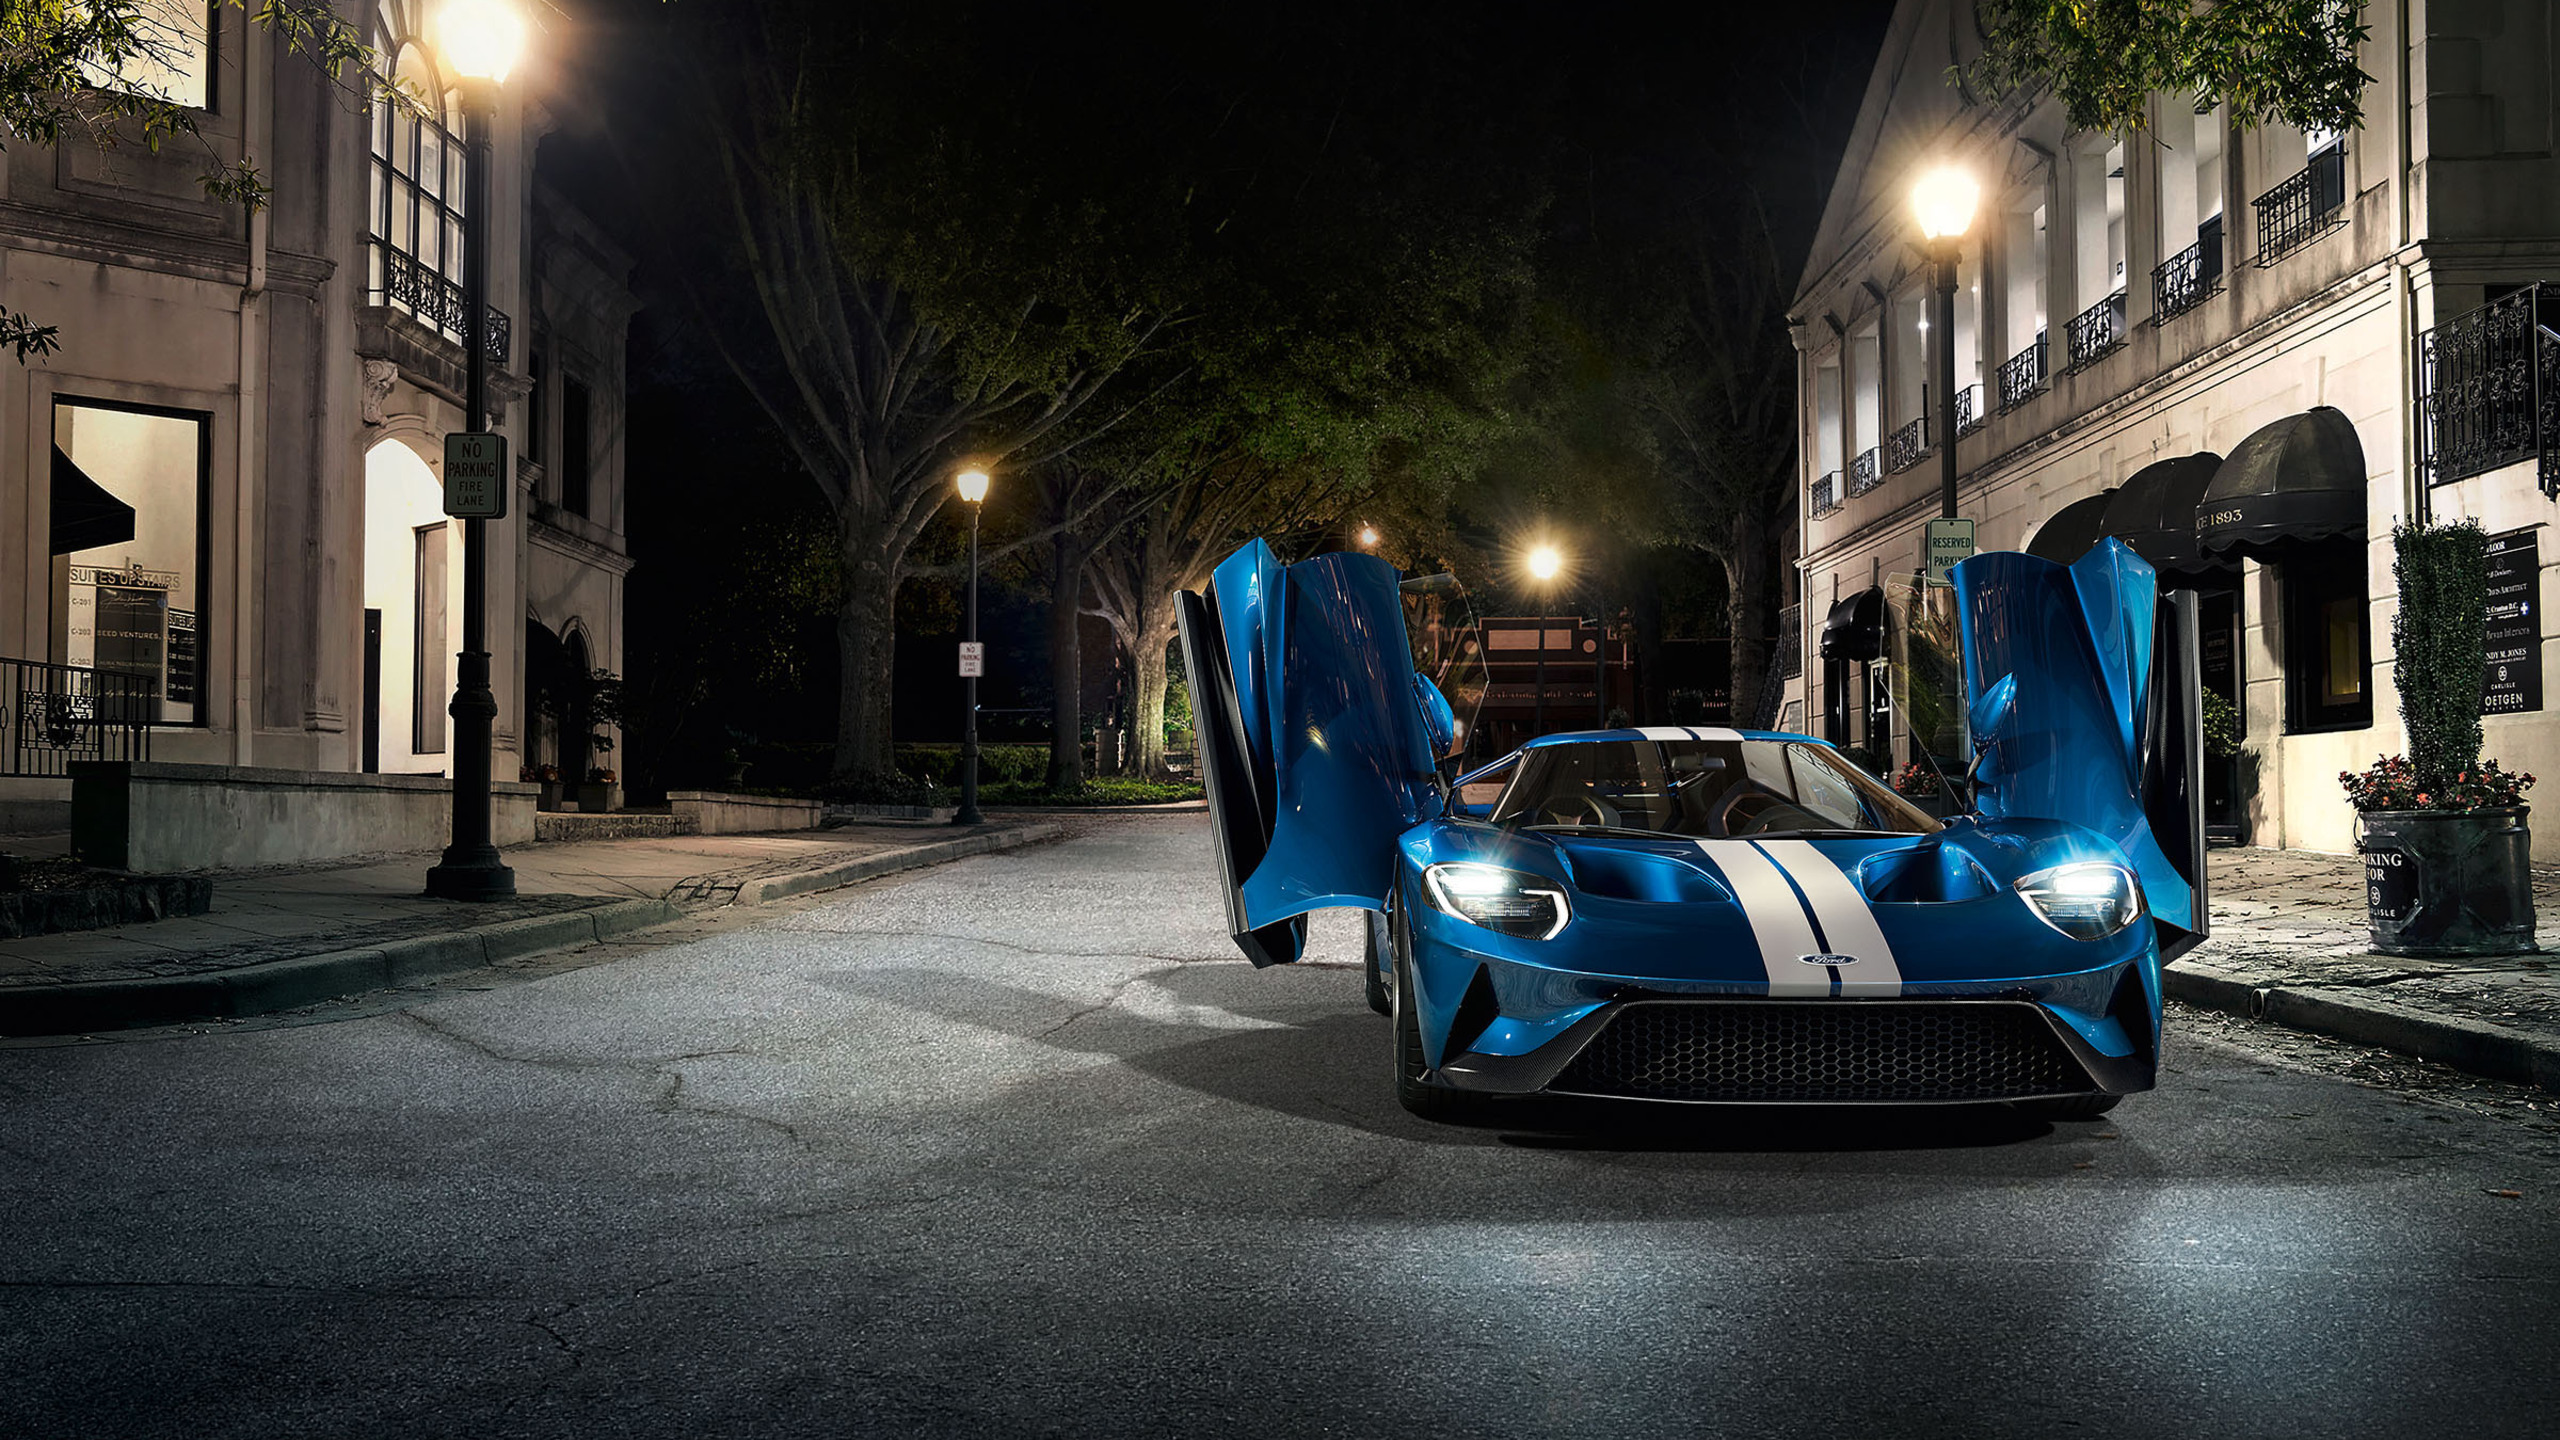 2560x1440 Ford Gt 2019 Front 1440p Resolution Hd 4k Wallpapers Images Backgrounds Photos And Pictures